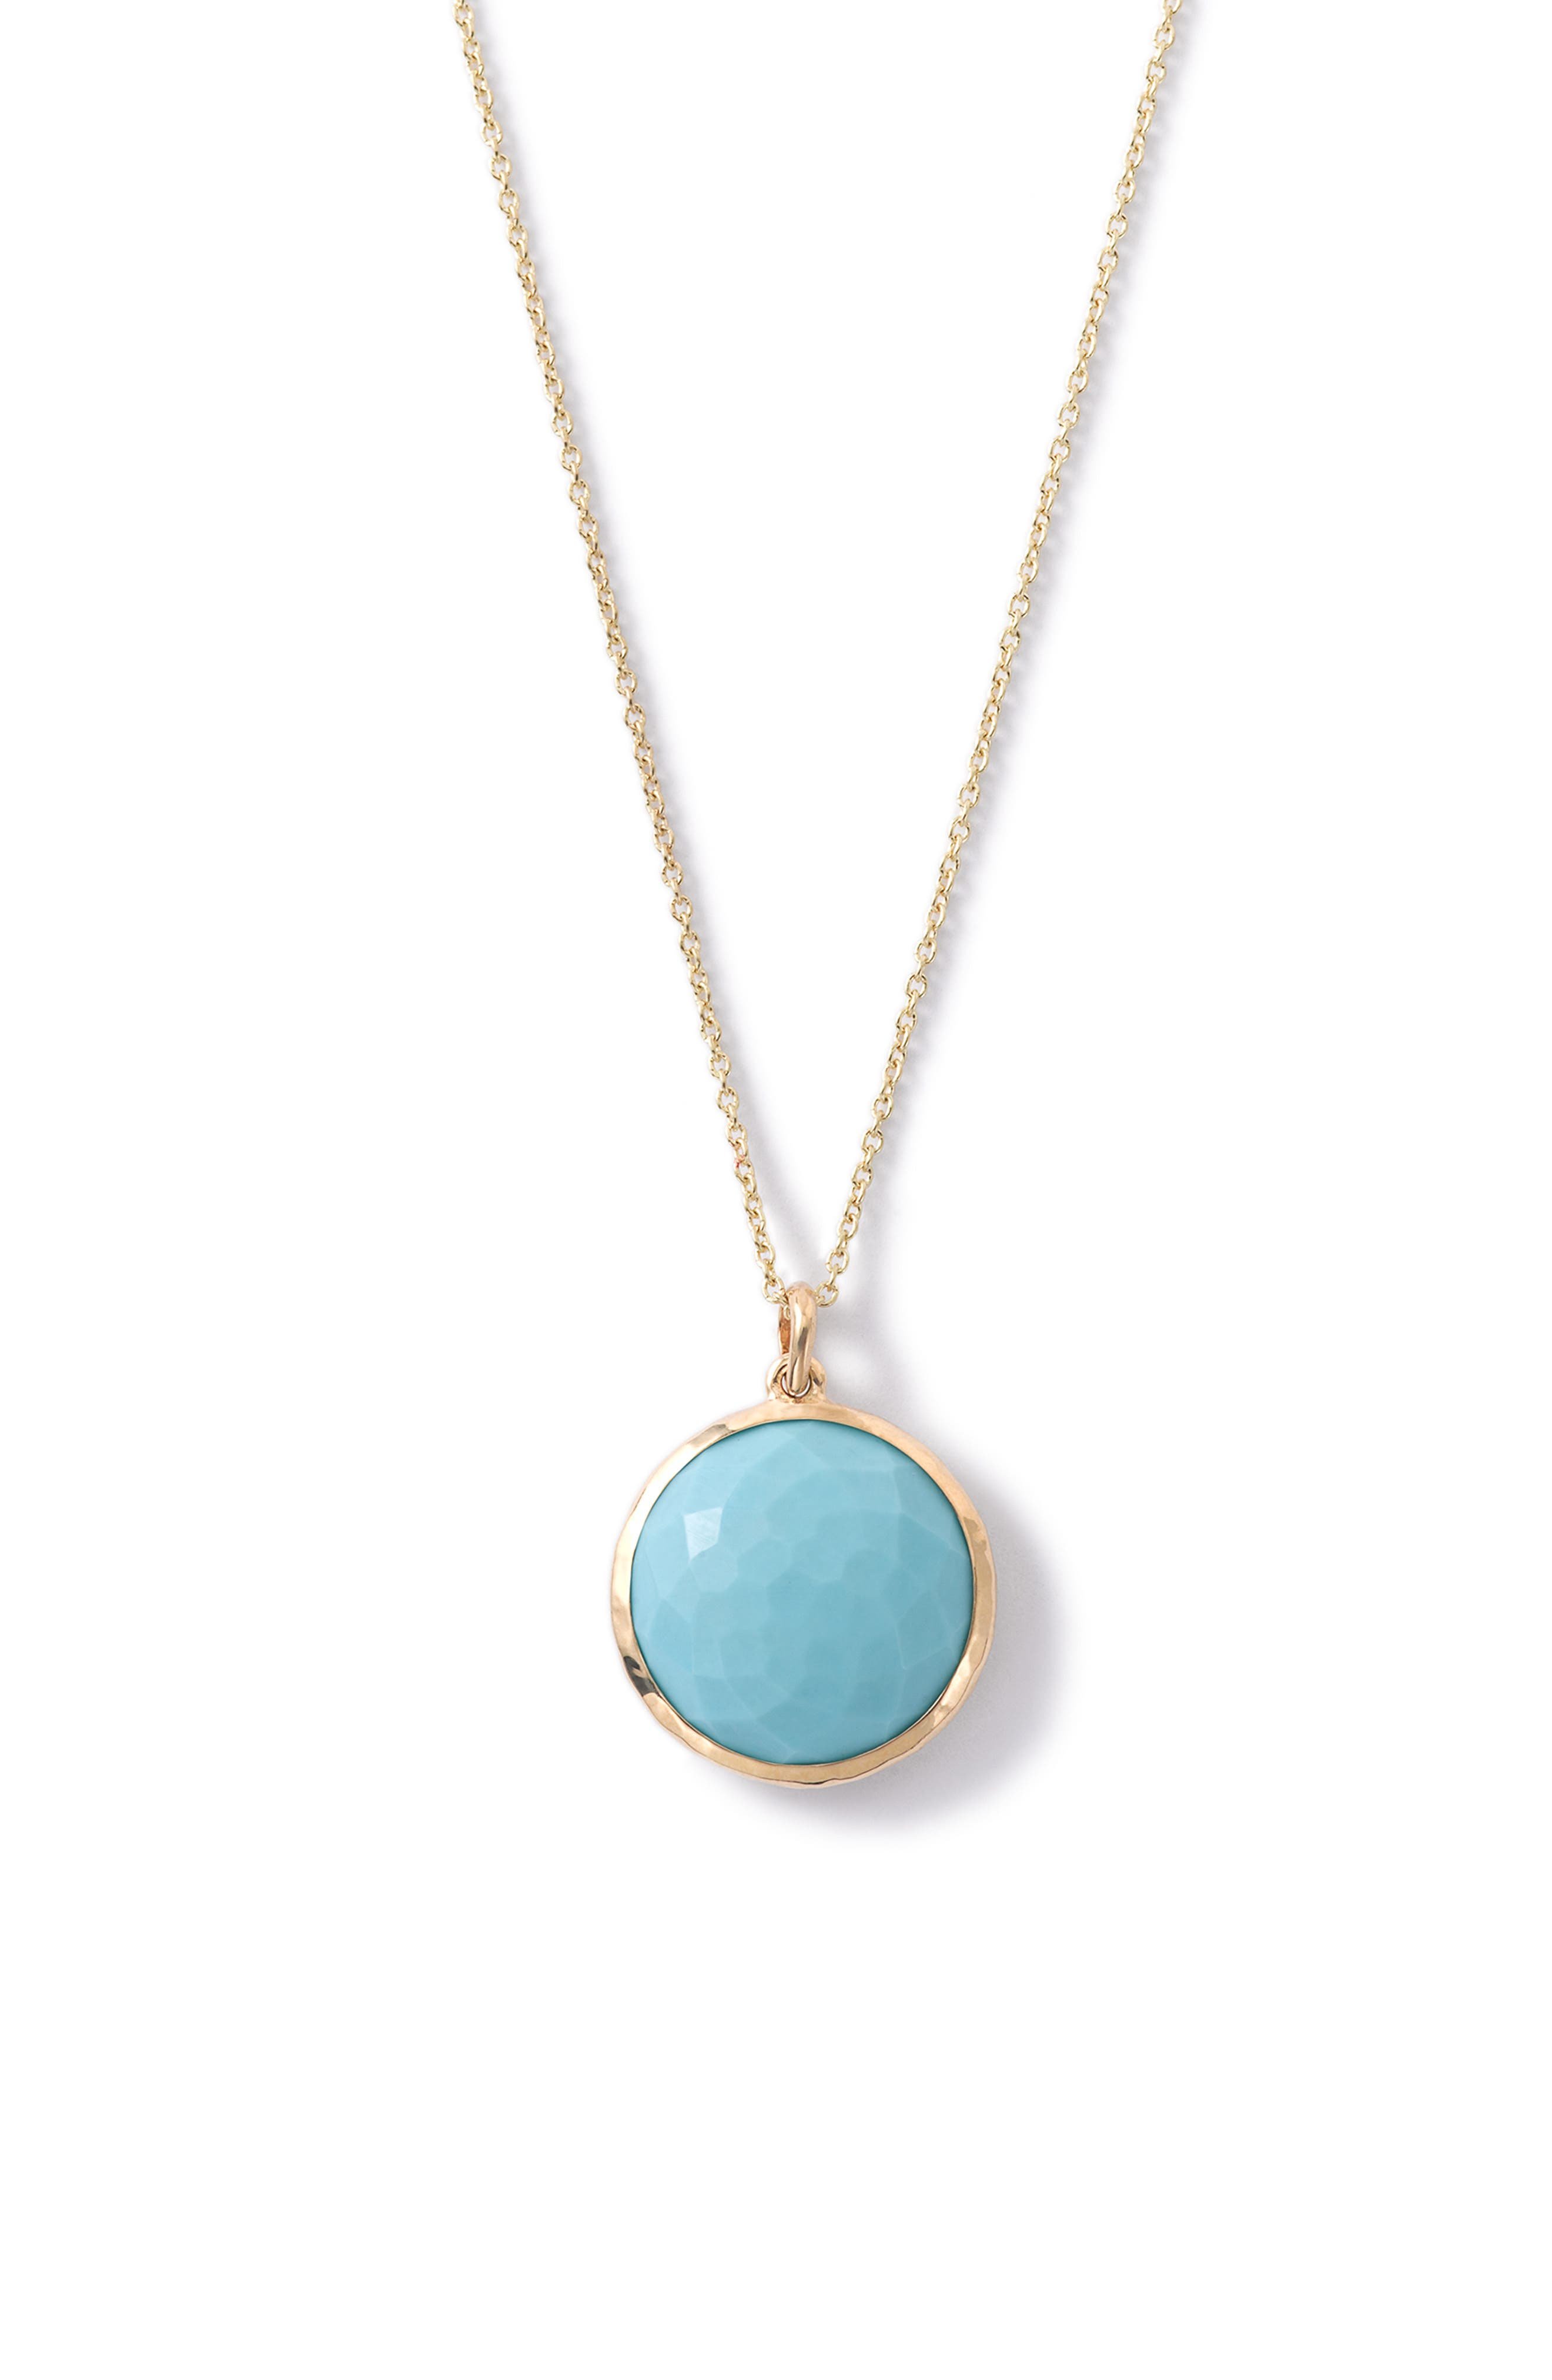 Lollipop Gemstone Pendant Necklace,                             Alternate thumbnail 2, color,                             440